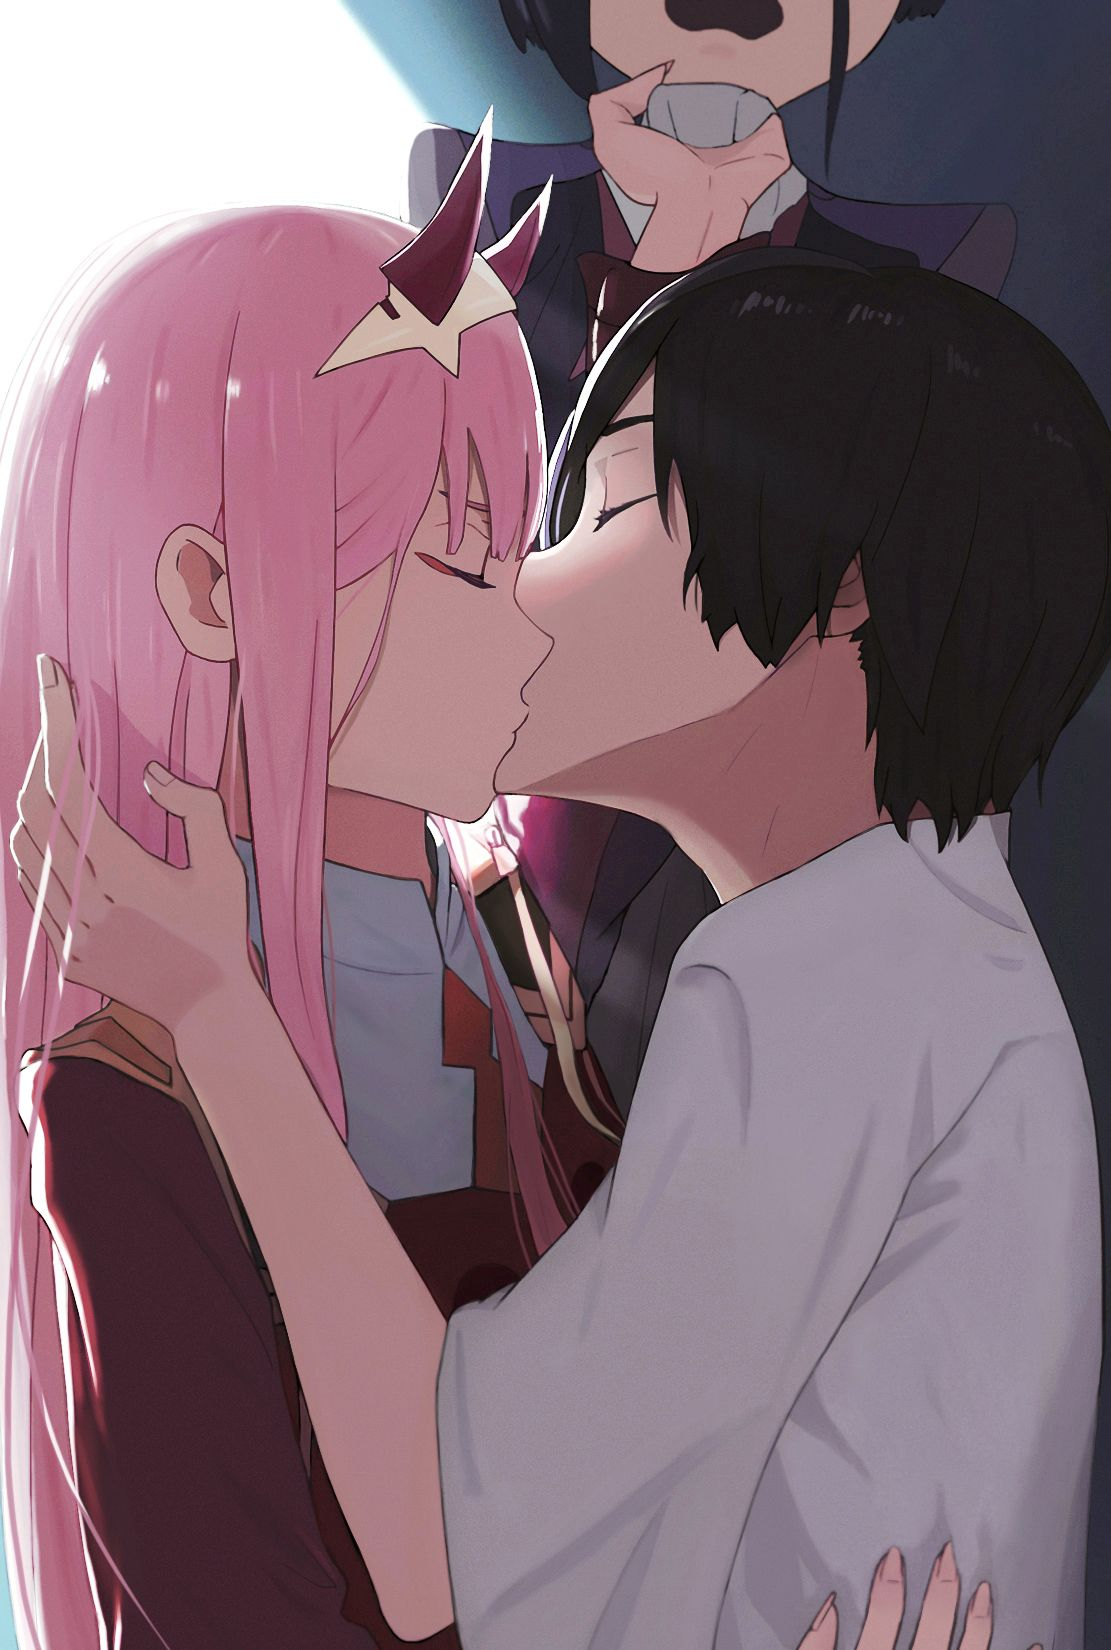 Http Img10 Reactor Cc Pics Post Full Anime Zero Two Darling In The Franxx Darling In The Franxx Hiro Darling Darling In The Franxx Anime Anime Love Couple